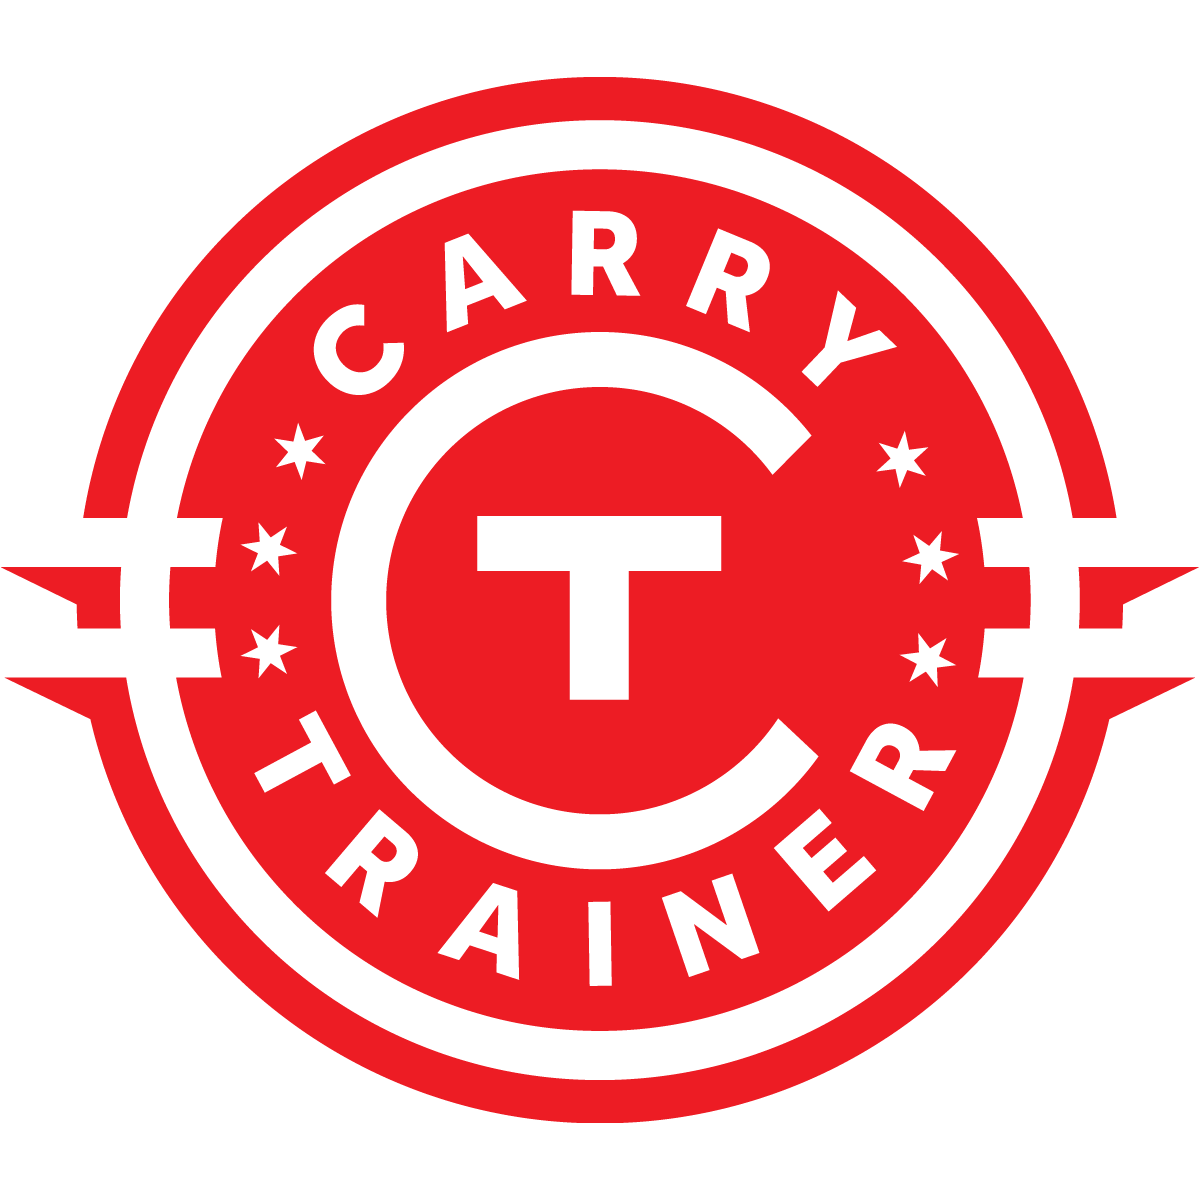 CARRY TRAINER  Carry Trainer provides real solutions for real problems. It is incumbent upon individuals, businesses, and organizations to protect and defend innocent life.  We provide training for individuals who are looking to make themselves the best that they can be. There is much more to self-defense than obtaining a permit to carry a gun. Training in any martial skill is more than attending a class, it is a lifestyle choice and the decision to exercise the right of arming oneself for the defense of themselves and family should not be taken lightly. Bullets cannot be called back once loosed from the gun. Safety is not an inherent trait; it is learned through proper training and repetition.  Web Site:   www.carrytrainer.com